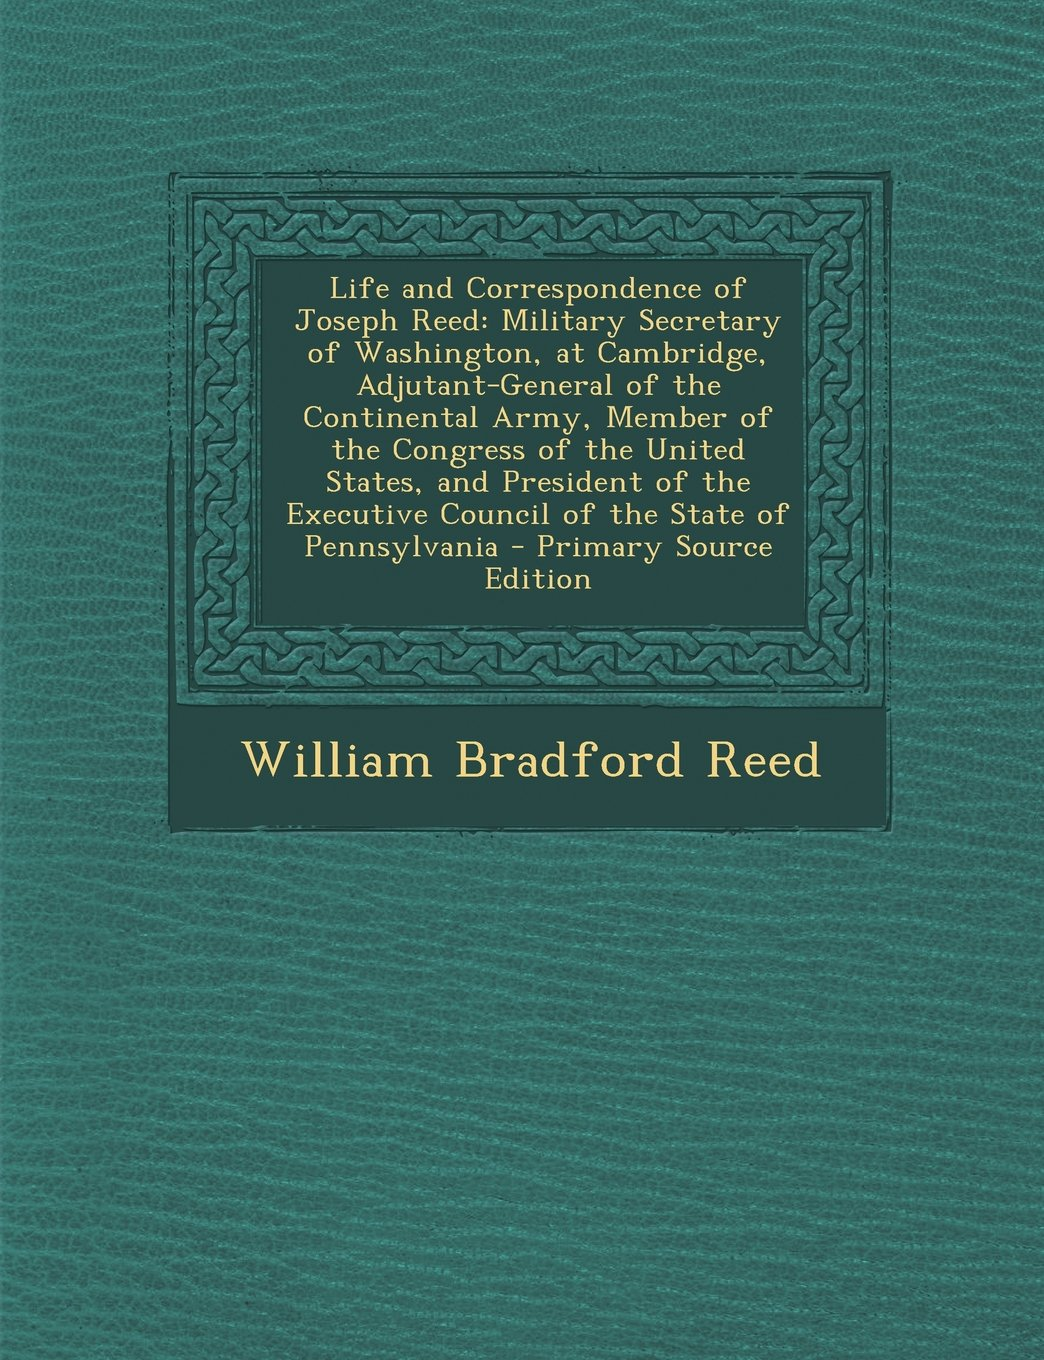 Download Life and Correspondence of Joseph Reed: Military Secretary of Washington, at Cambridge, Adjutant-General of the Continental Army, Member of the ... Council of the State of Pennsylvania PDF